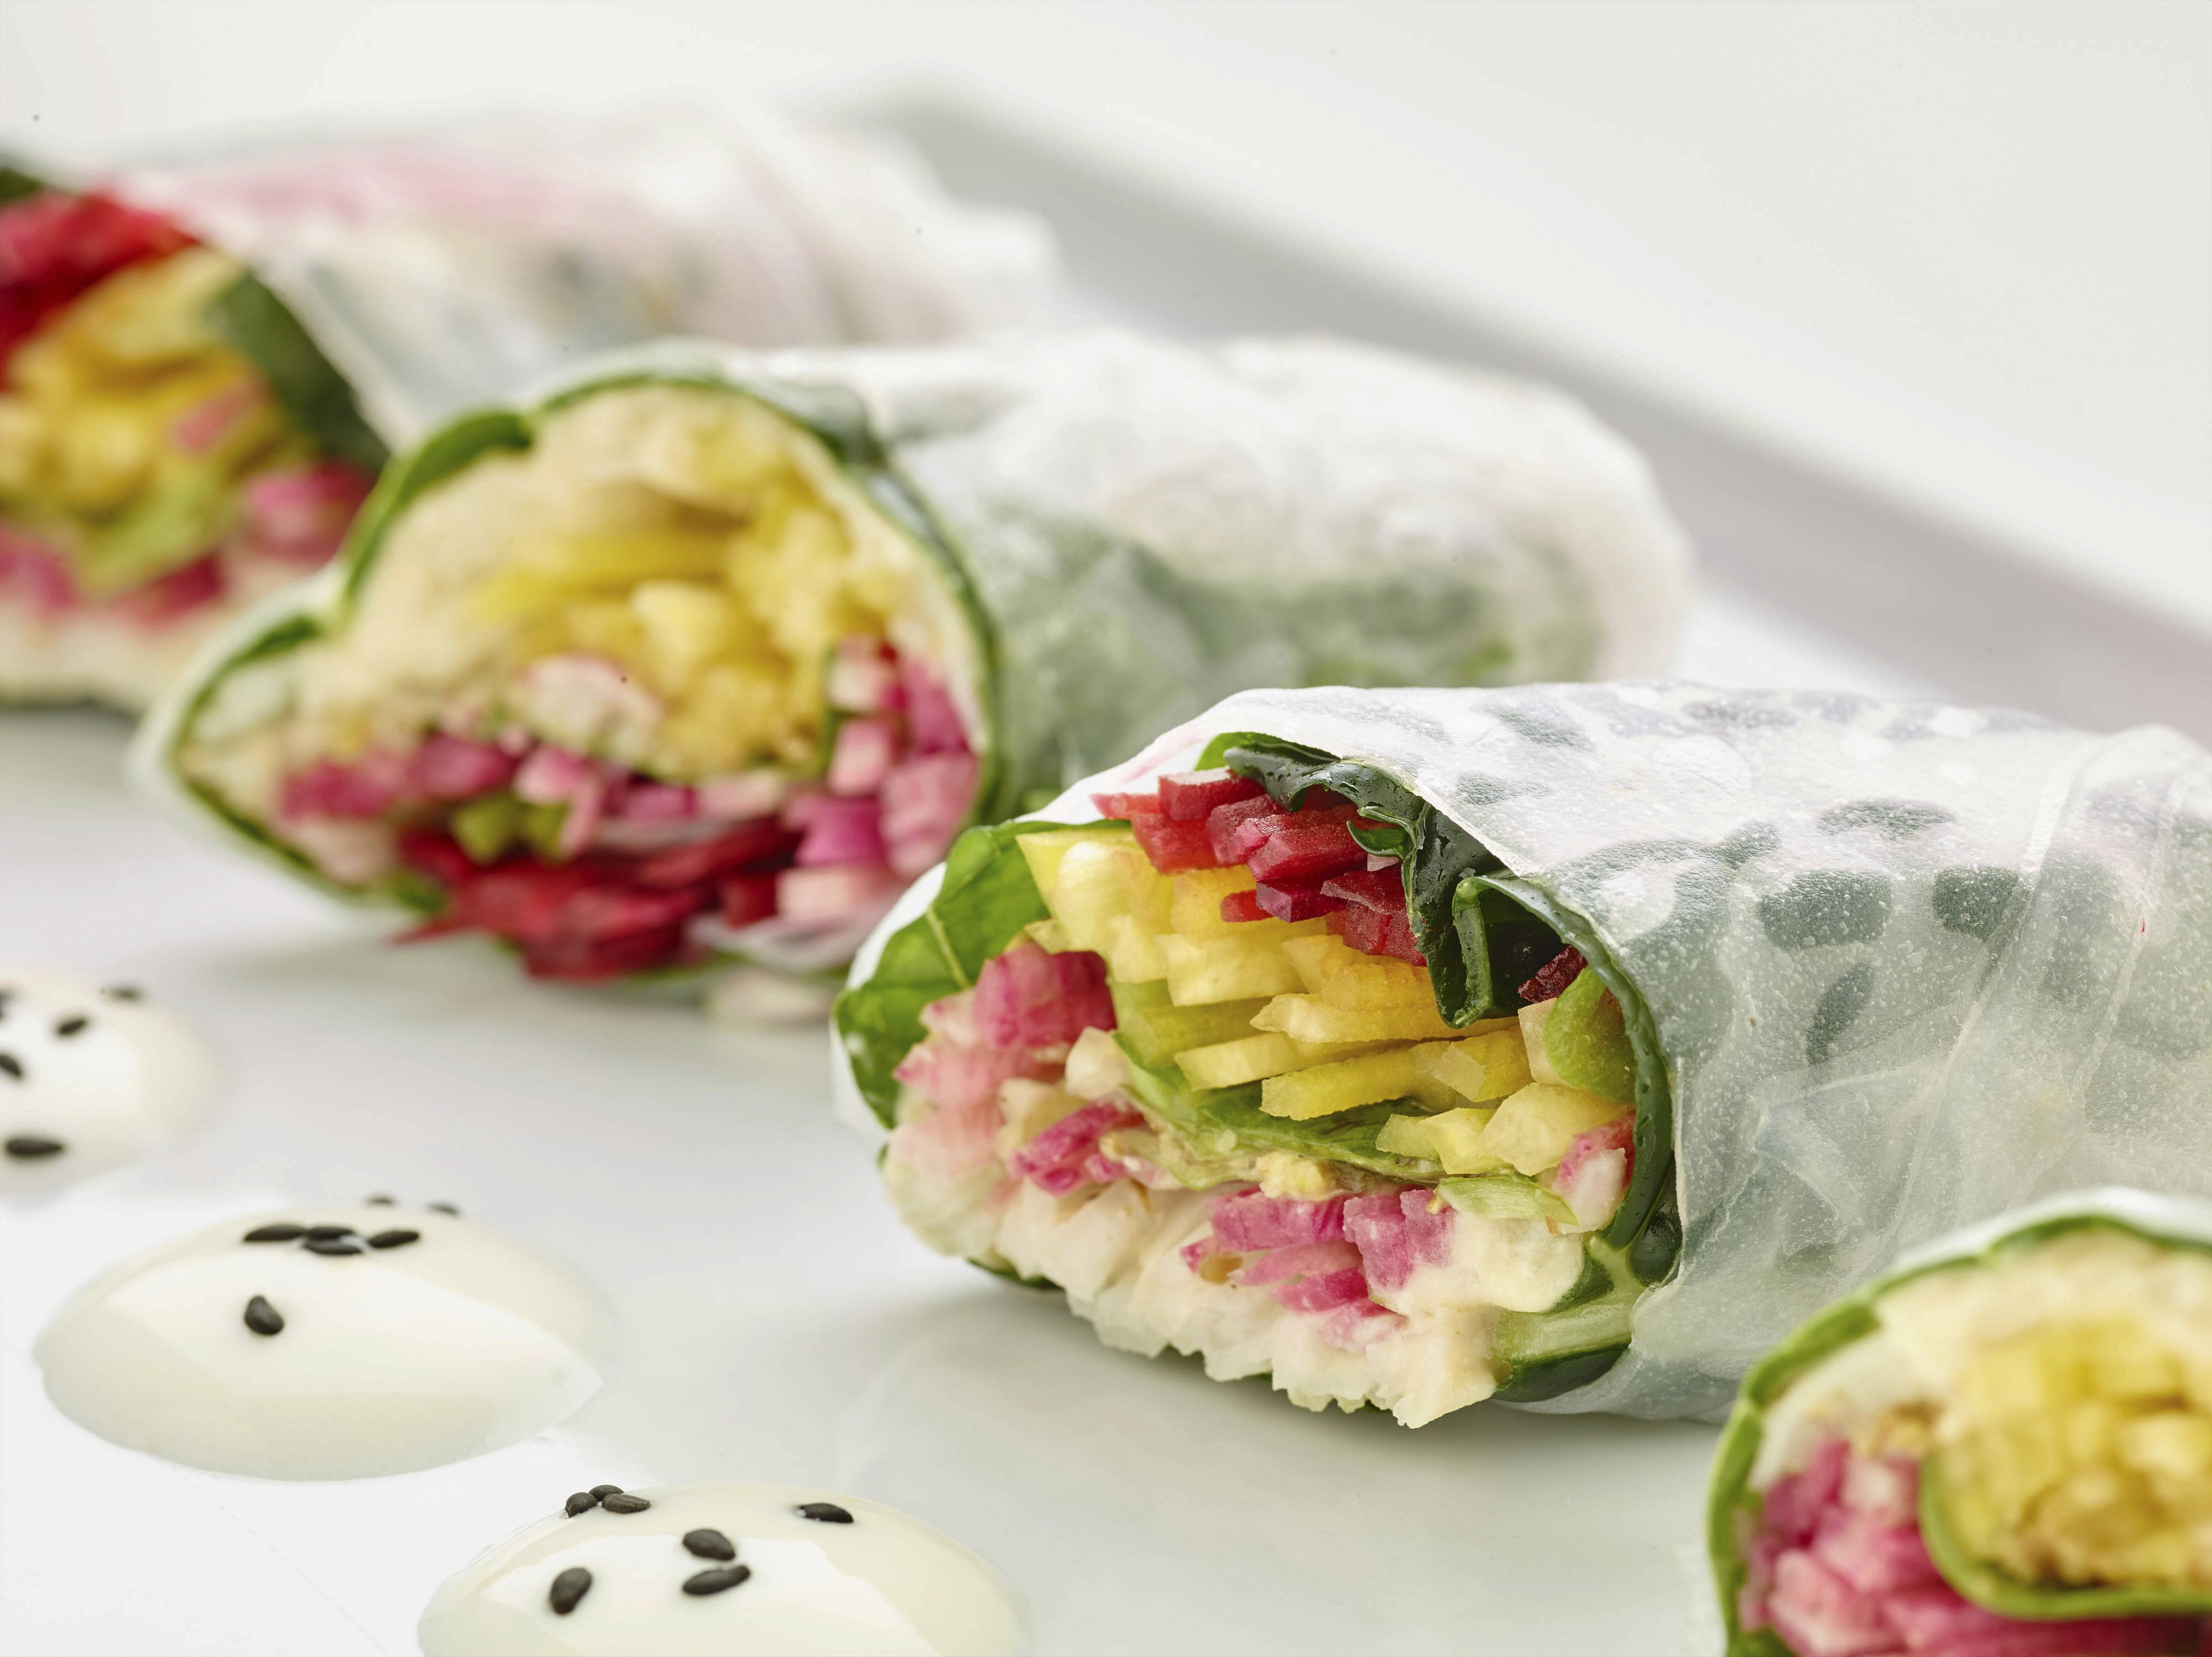 Veggie-filled spring rolls offer the perfect holiday detox